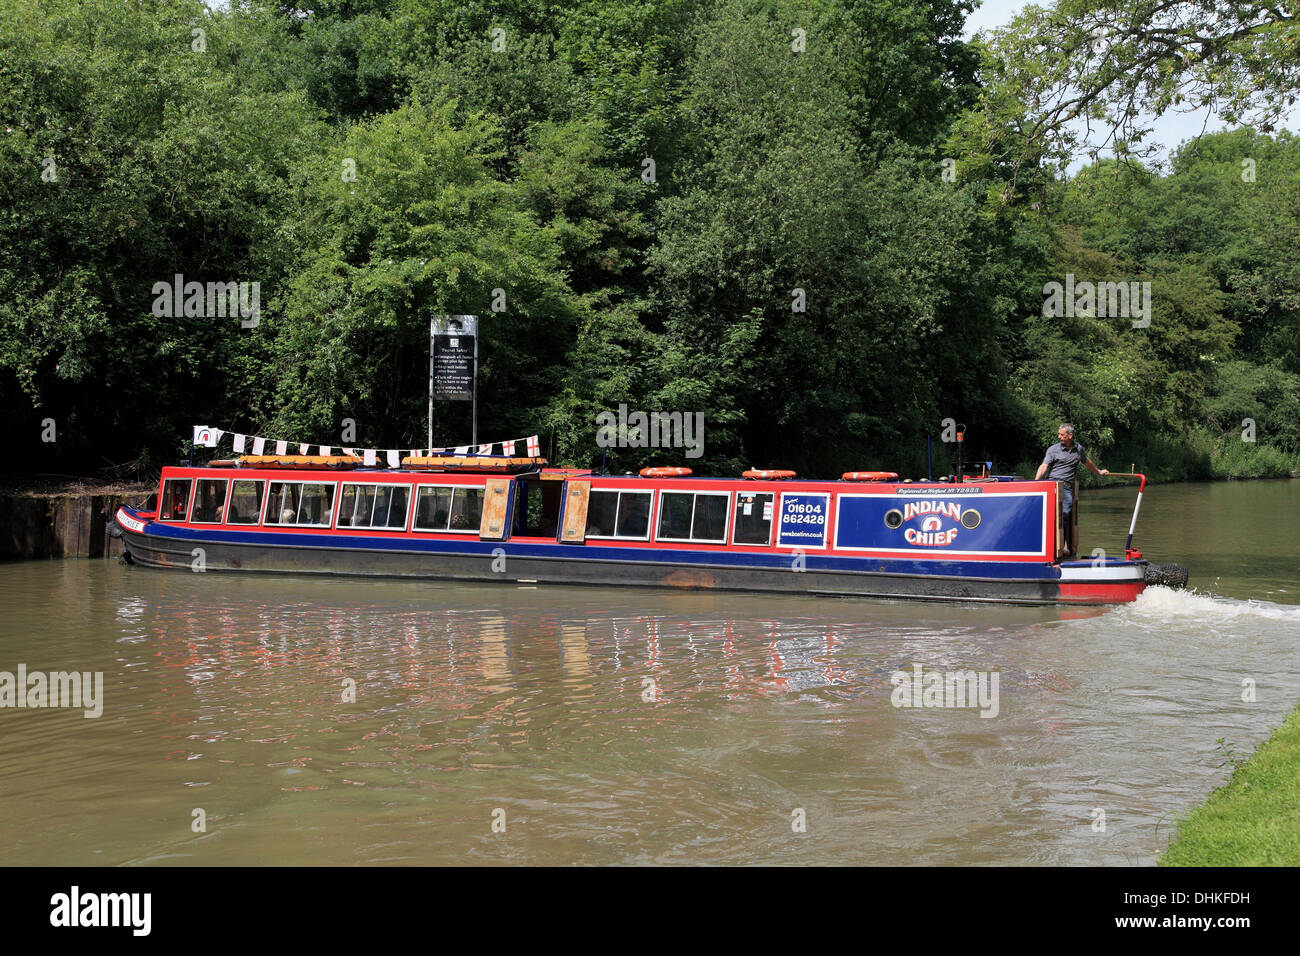 A narrowboat turning in the winding hole near Blisworth Tunnel on the Grand Union Canal at Stoke Bruerne - Stock Image